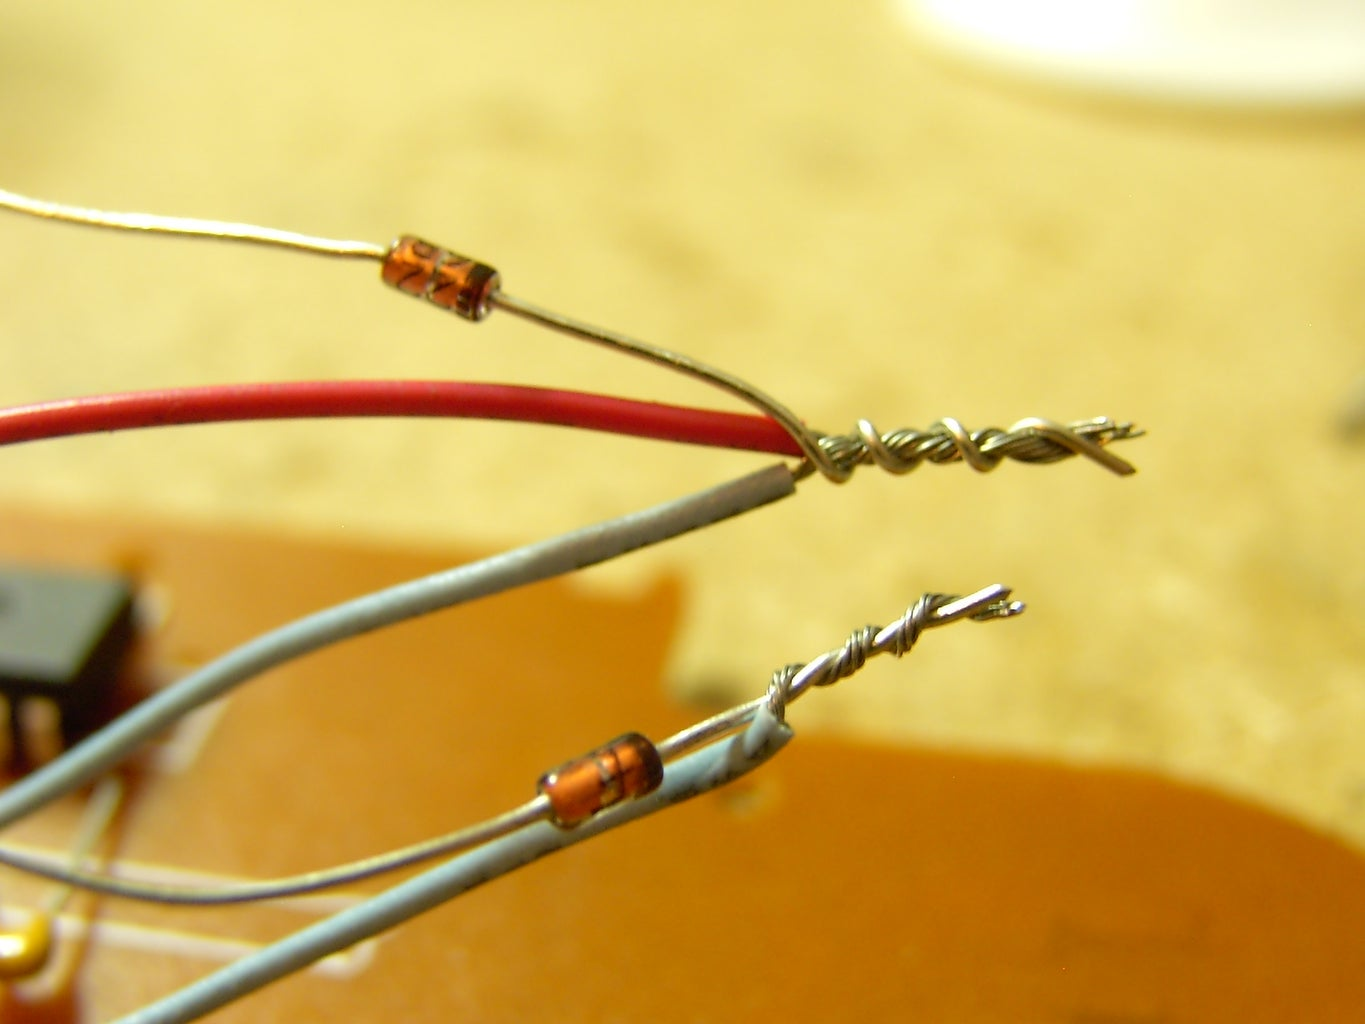 Construction: USB Cable (nearly Done)